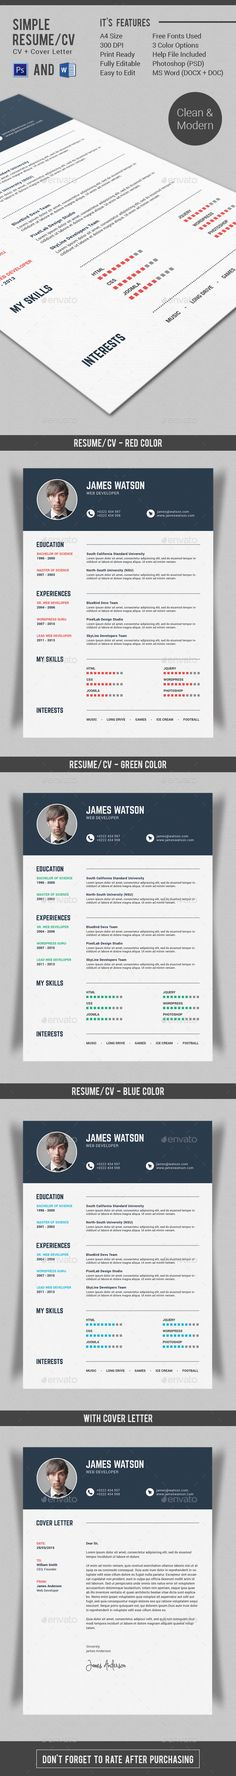 Simple Resume Template Simple, Simple resume template and Resume - simple of resume